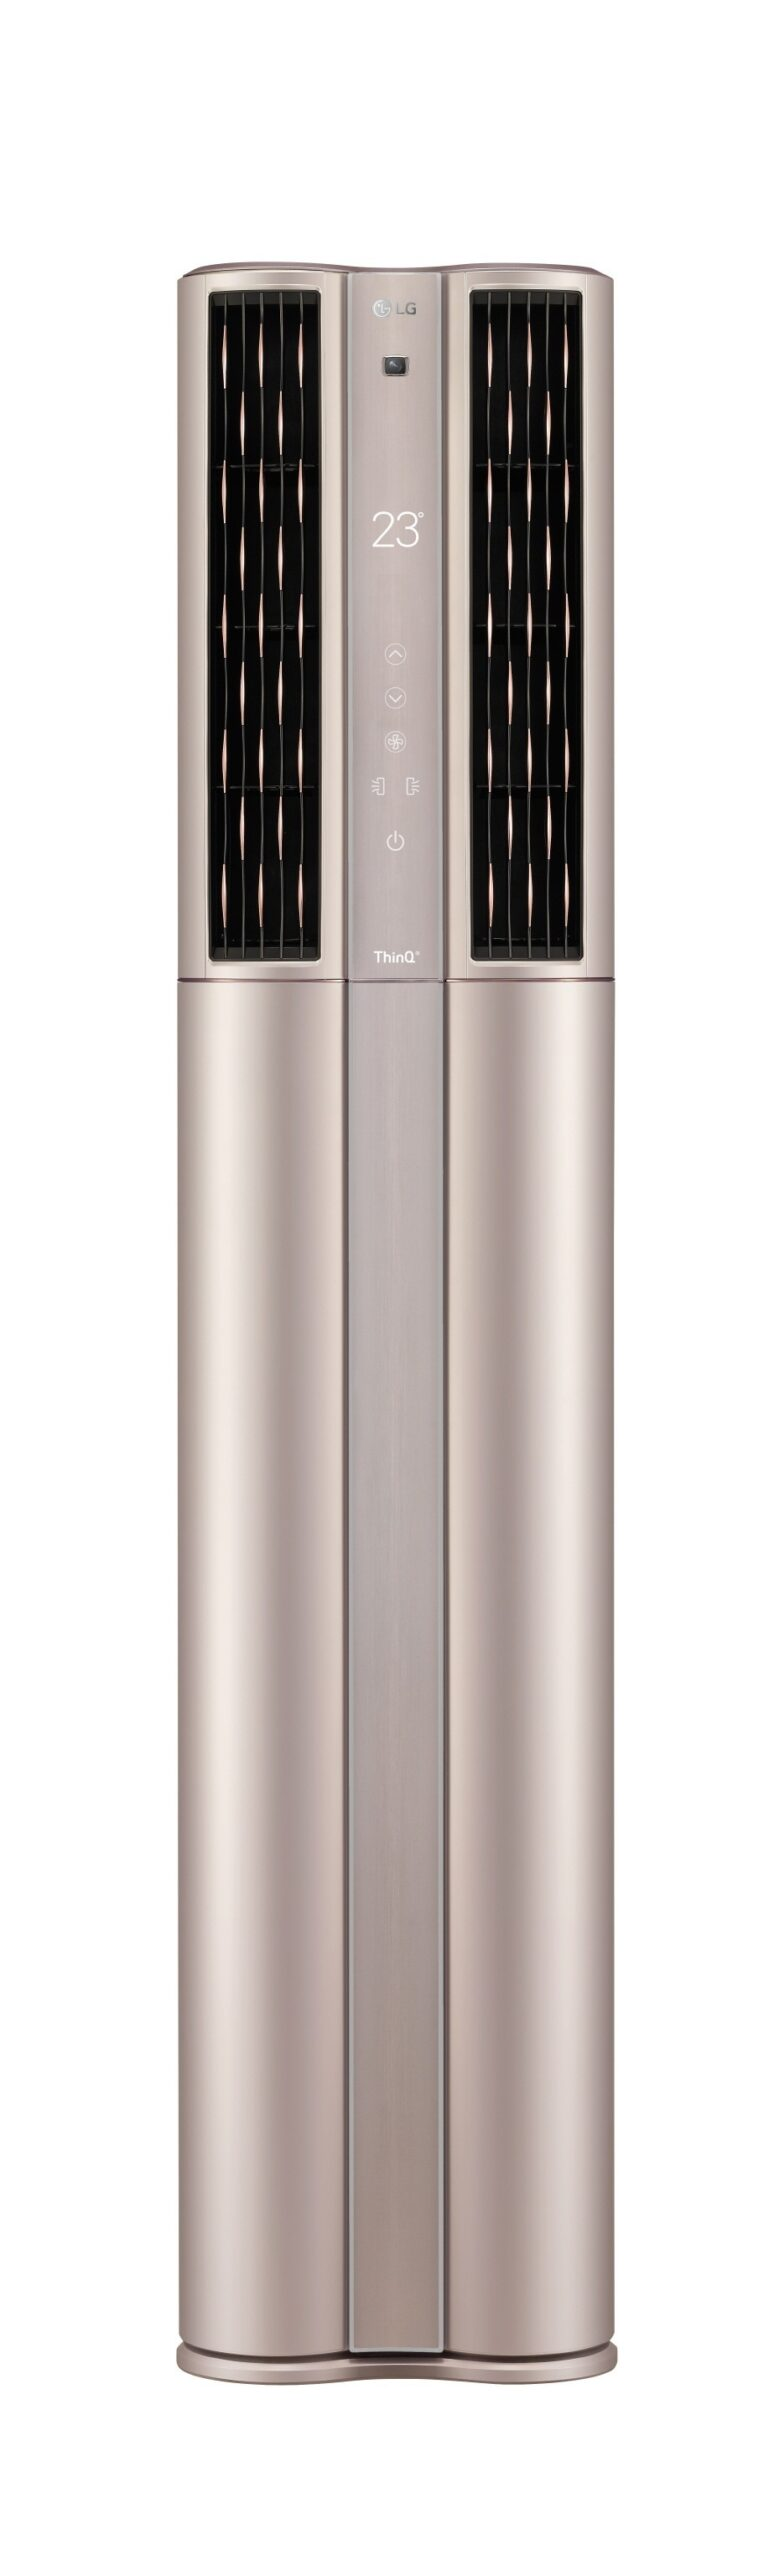 Front view of LG DUALCOOL ThinQ™ Stand Inverter air conditioner with its top vents open